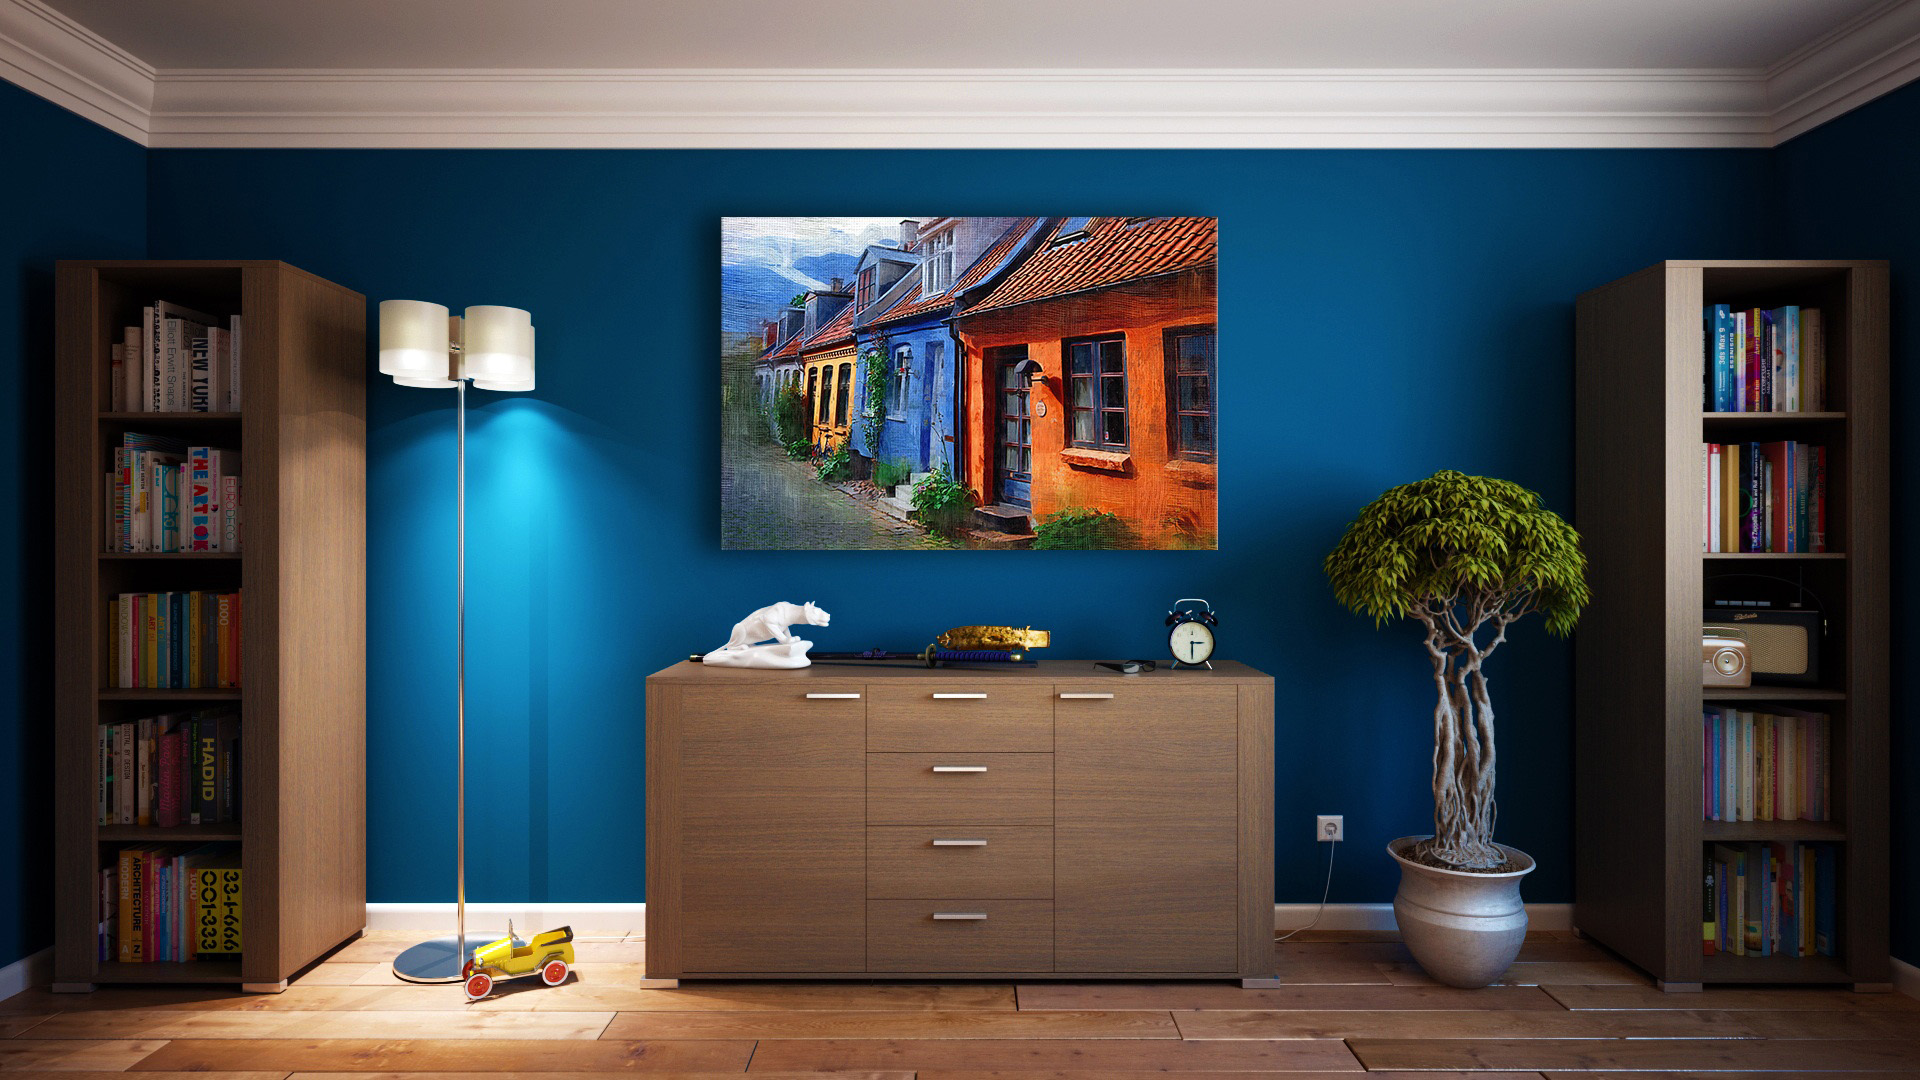 Room with painting on the wall image free stock photo - Interior painting and decorating ...